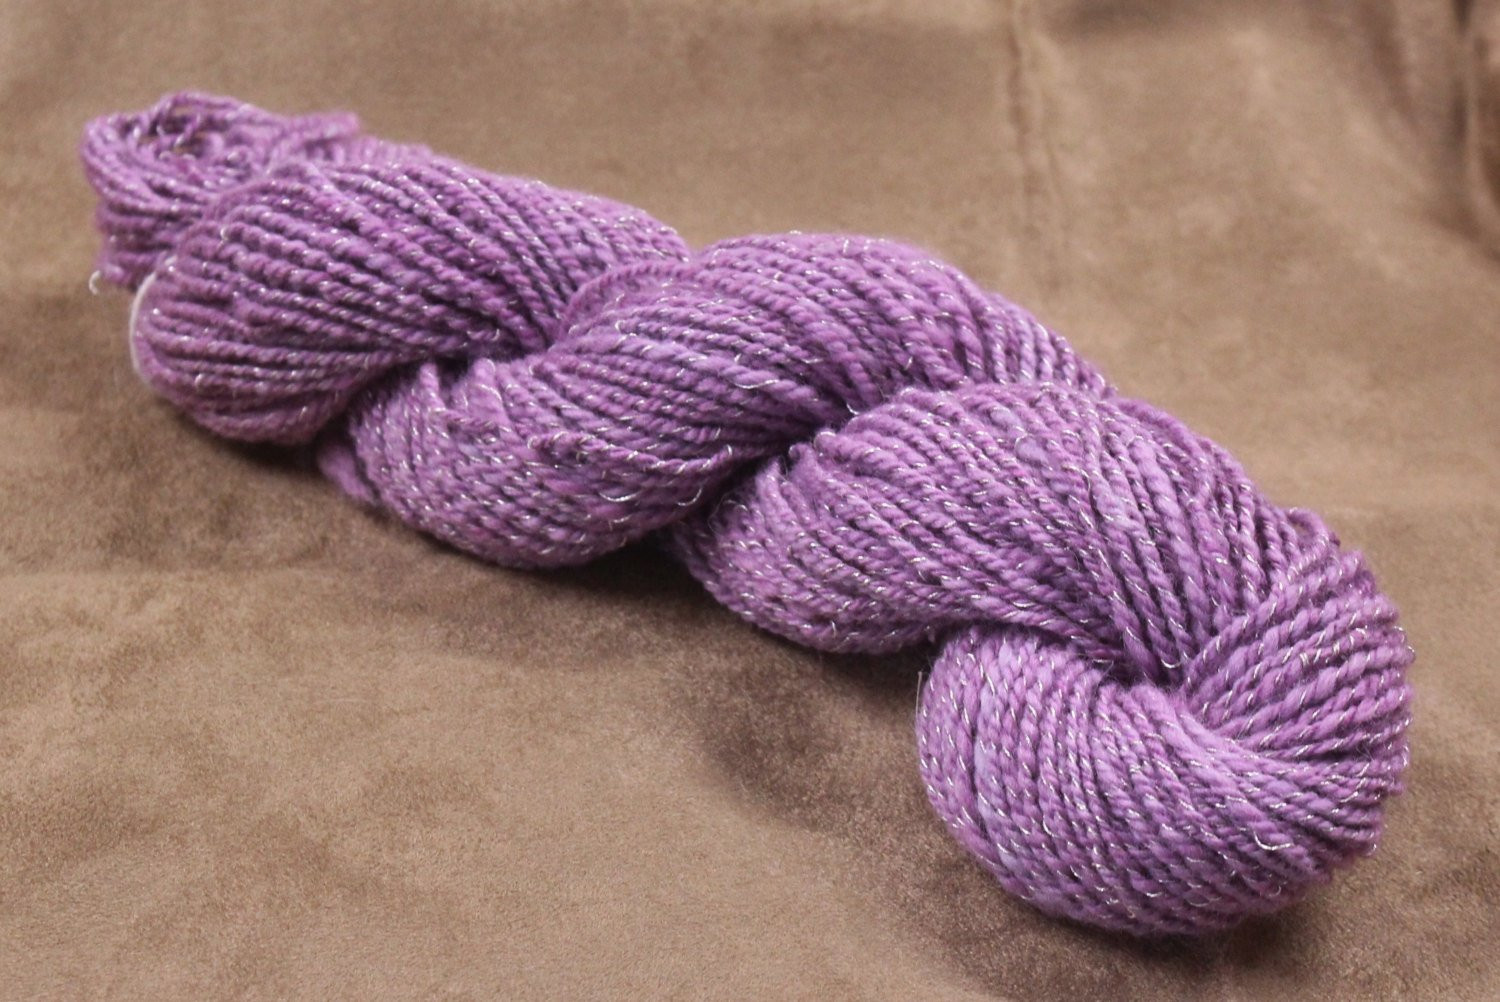 Handspun DK Yarn with Metallic Thread